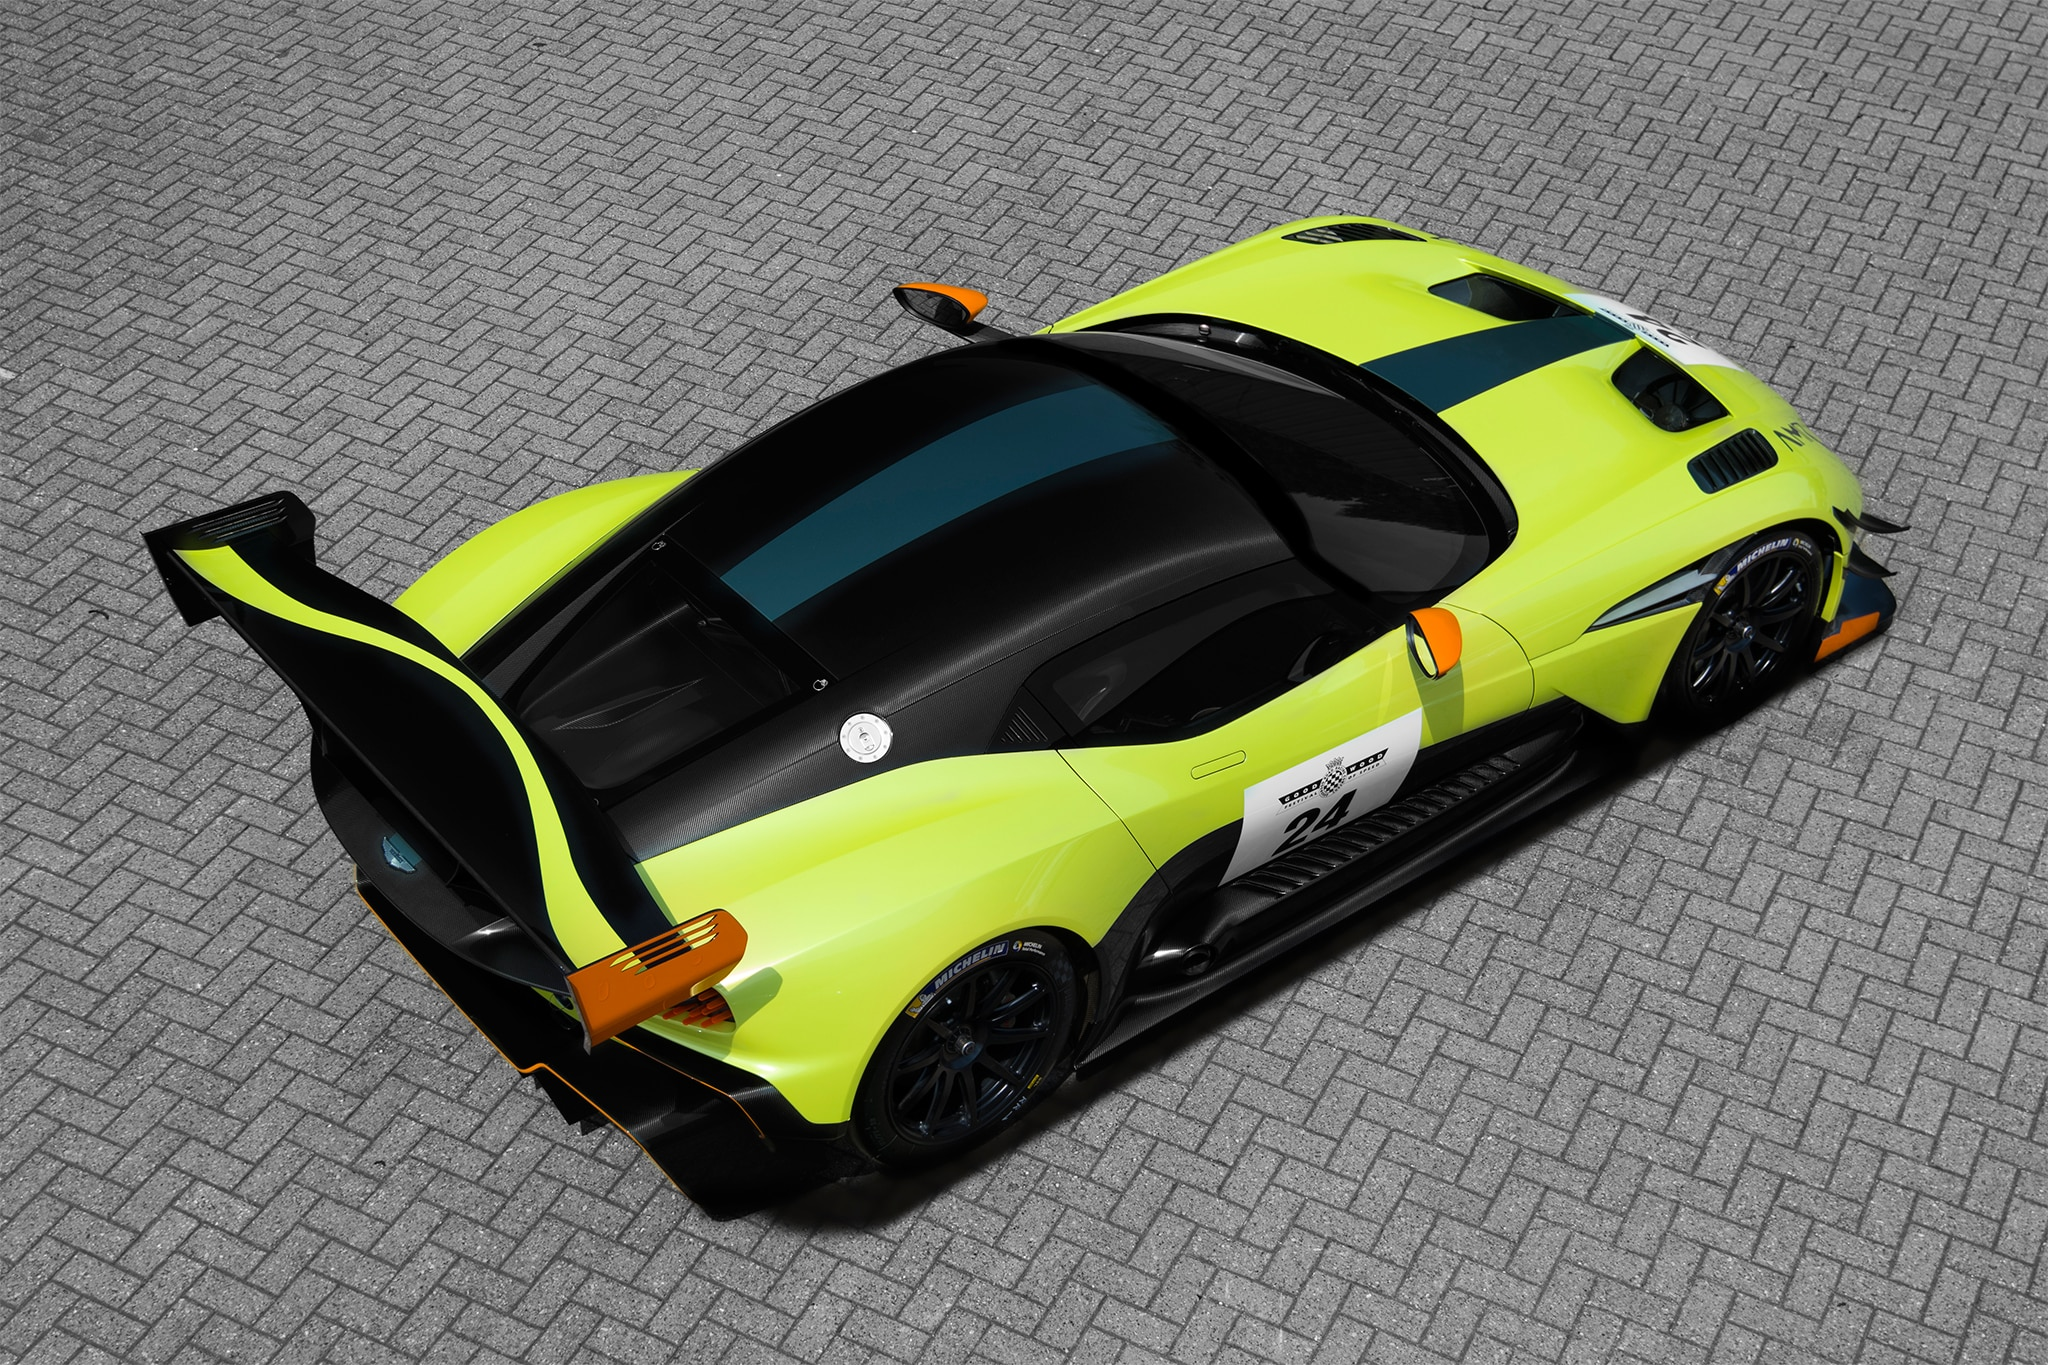 First Drive Aston Martin Vulcan AMR Pro is Even More Radical